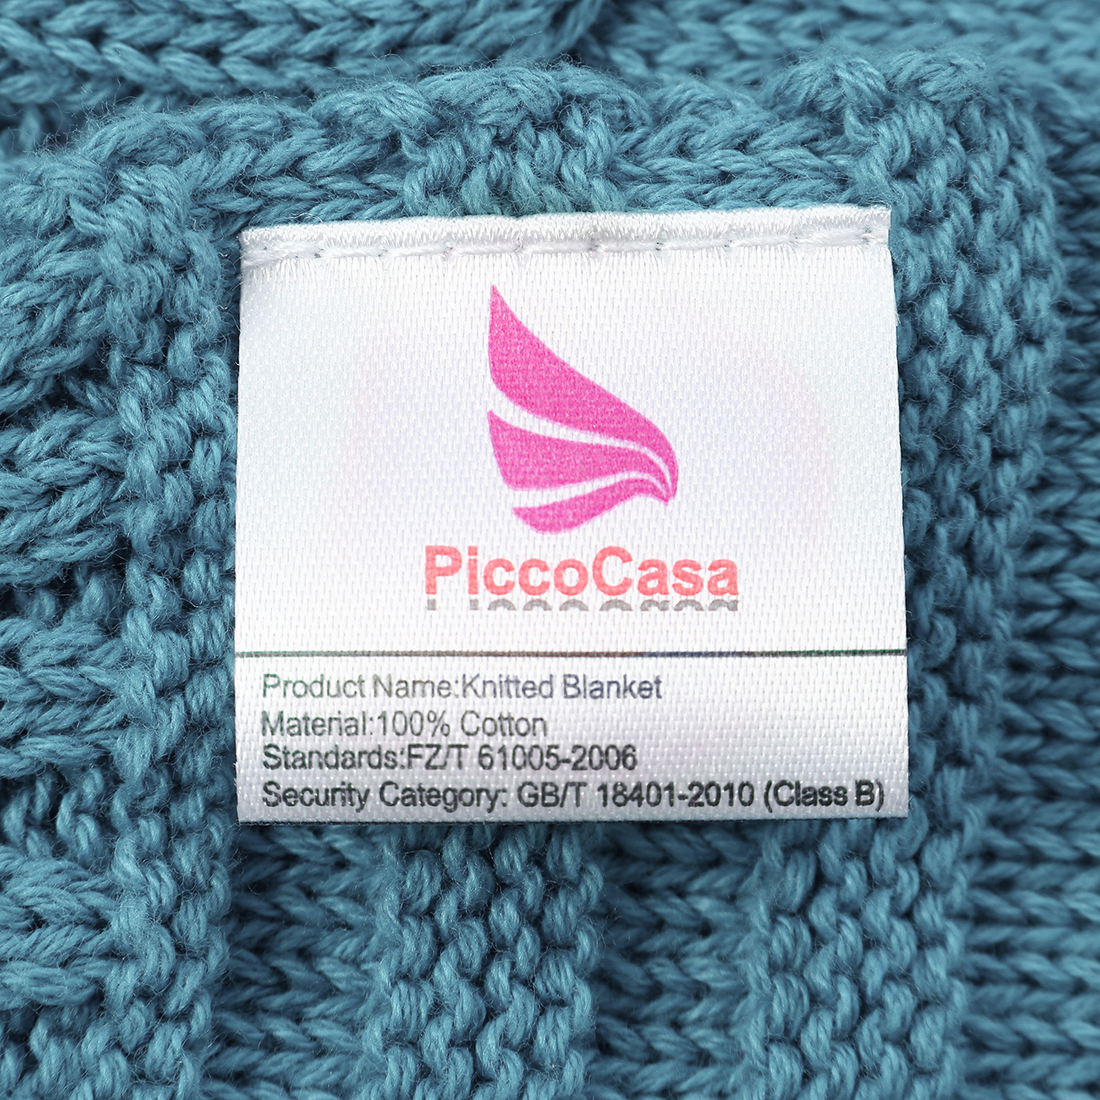 "Cotton Blanket Soft Warm Cable Knit Throw Home Bedding Blanket Teal Blue 50""x60"" - image 3 de 8"